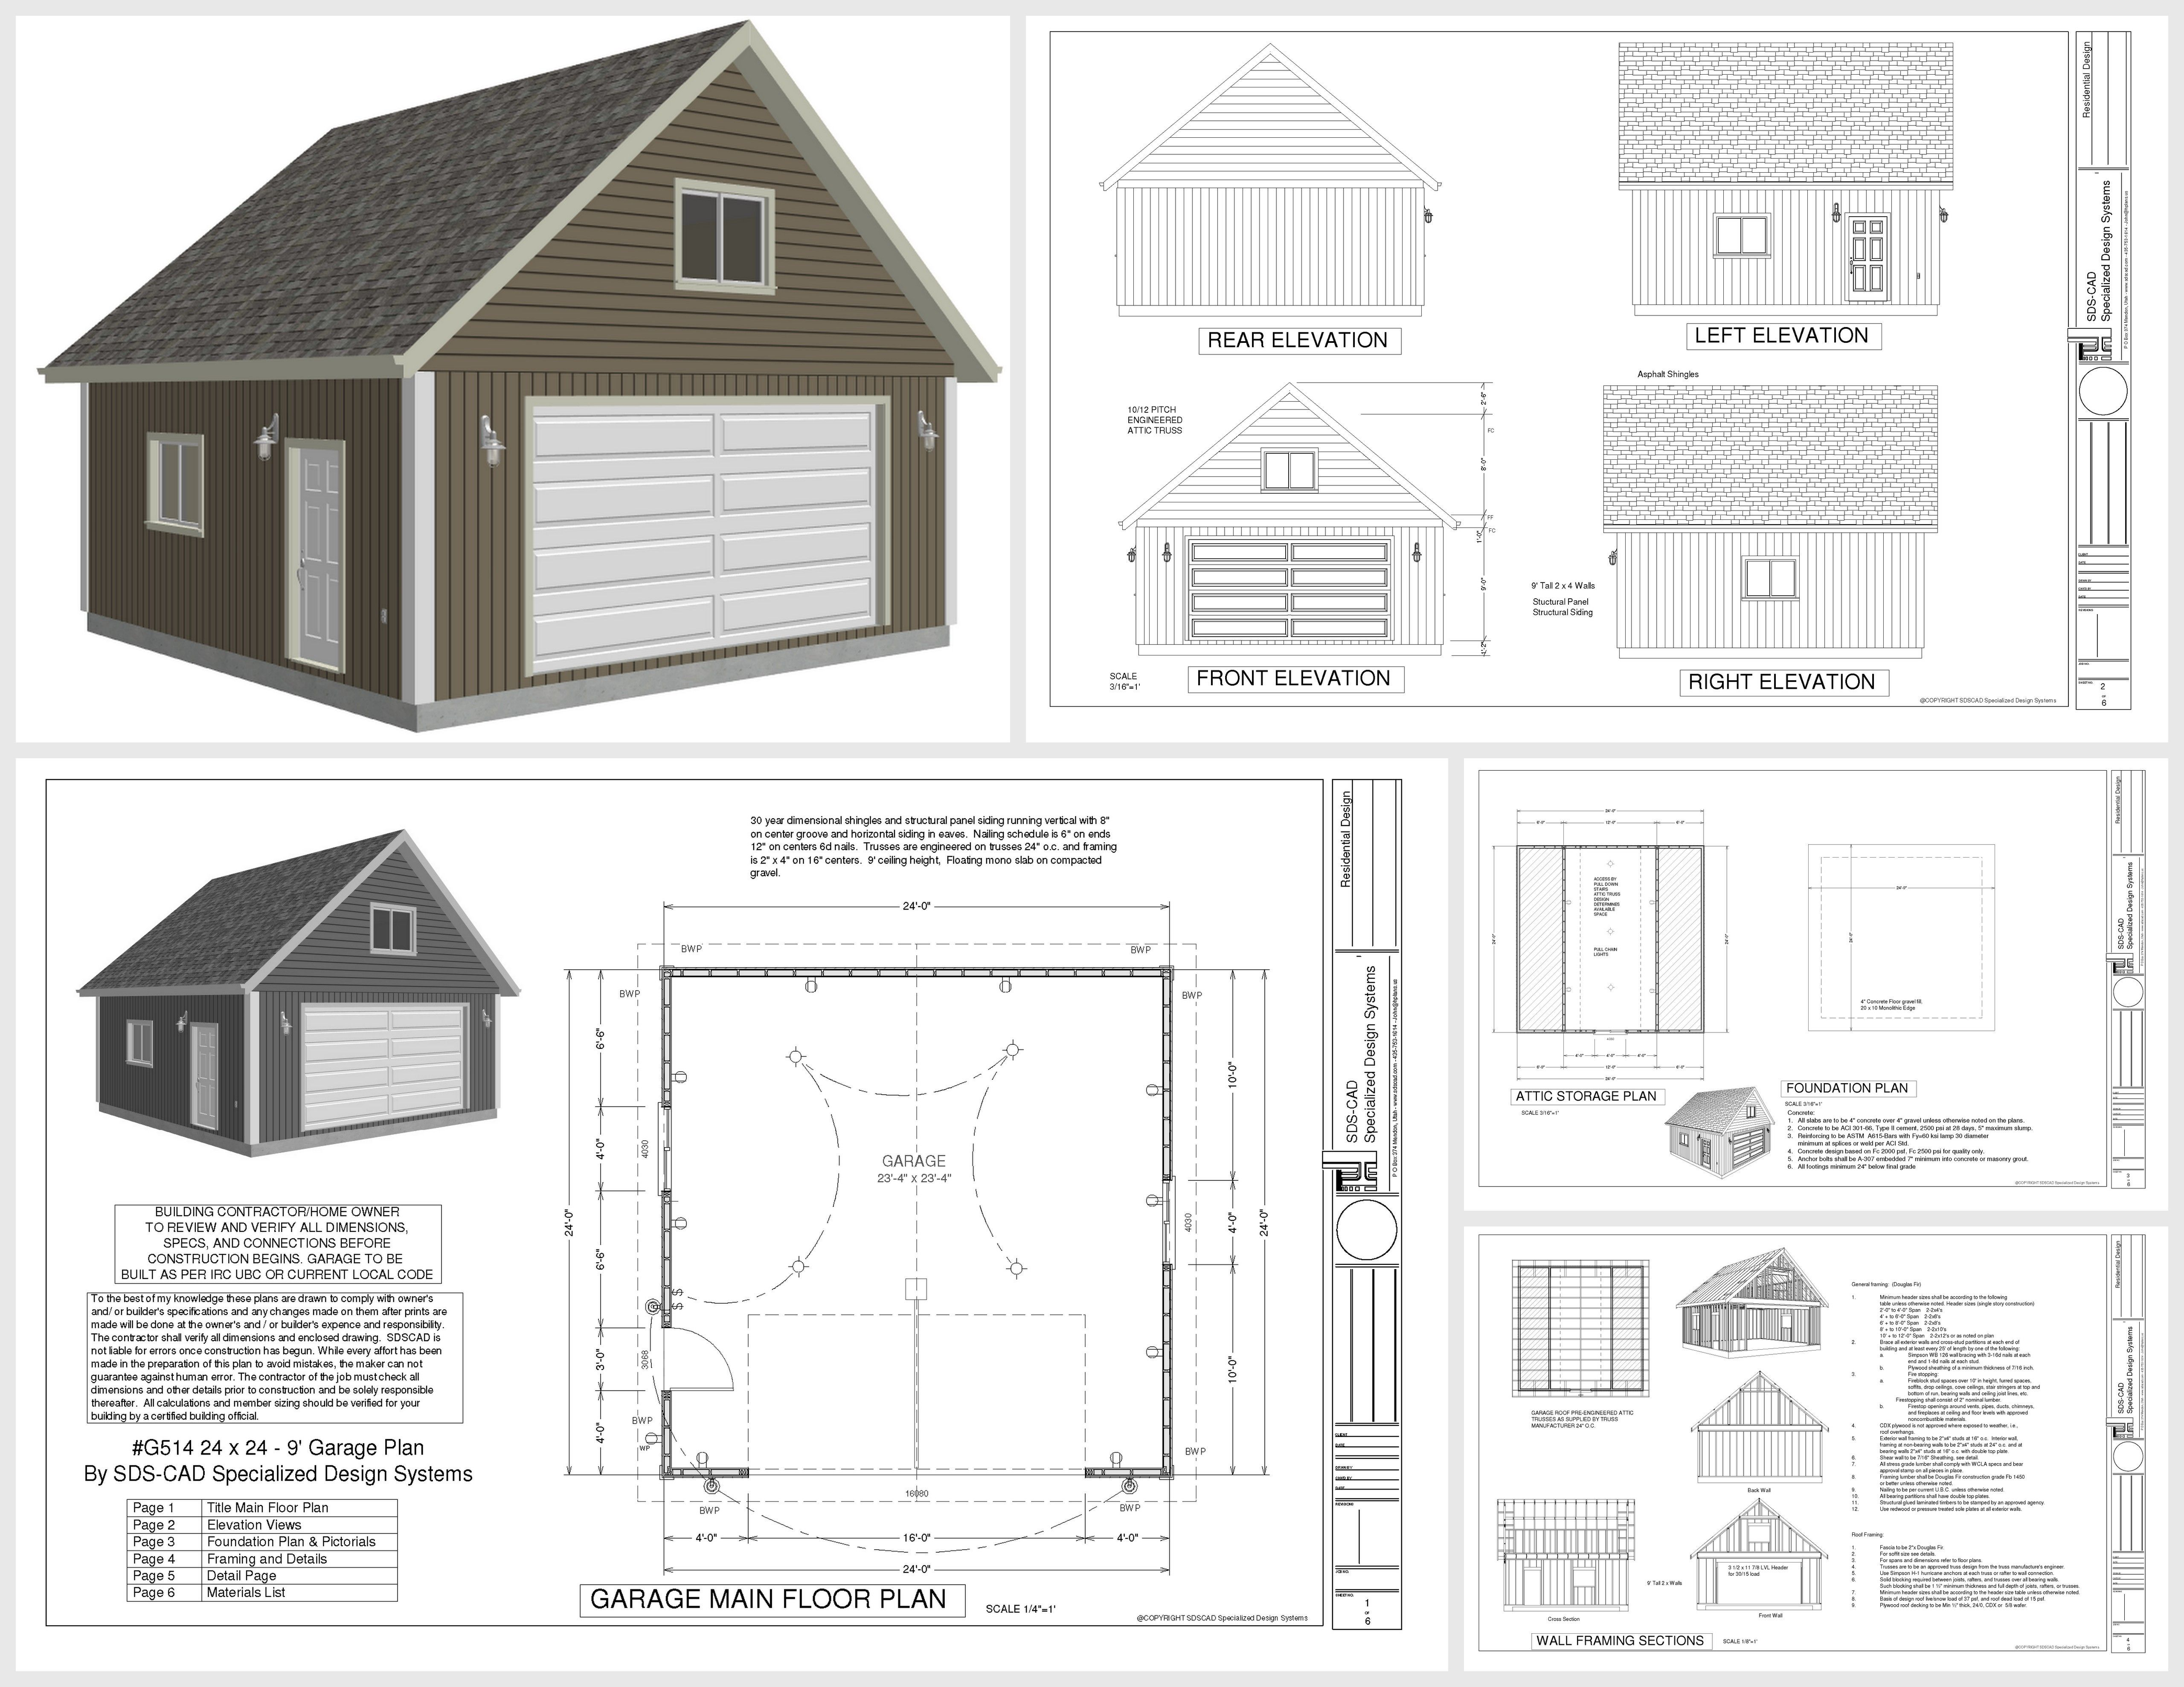 G514 24 x 24 x 9 loft garage plans in pdf and dwg shops for Garage plans with loft